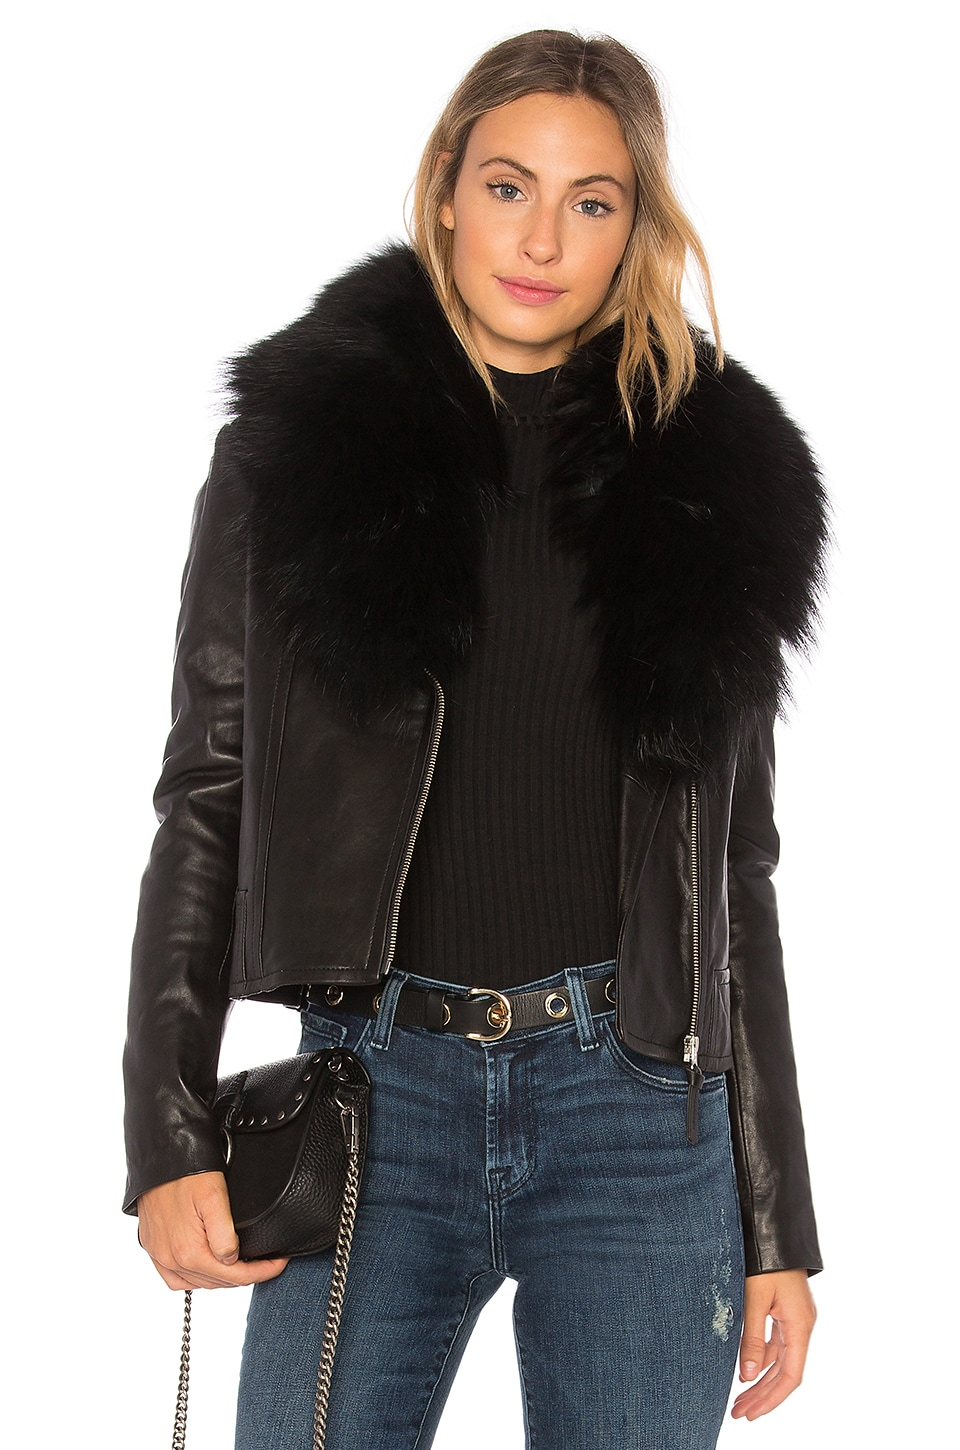 Mackage Yoana Leather Jacket With Fur Trim in Black